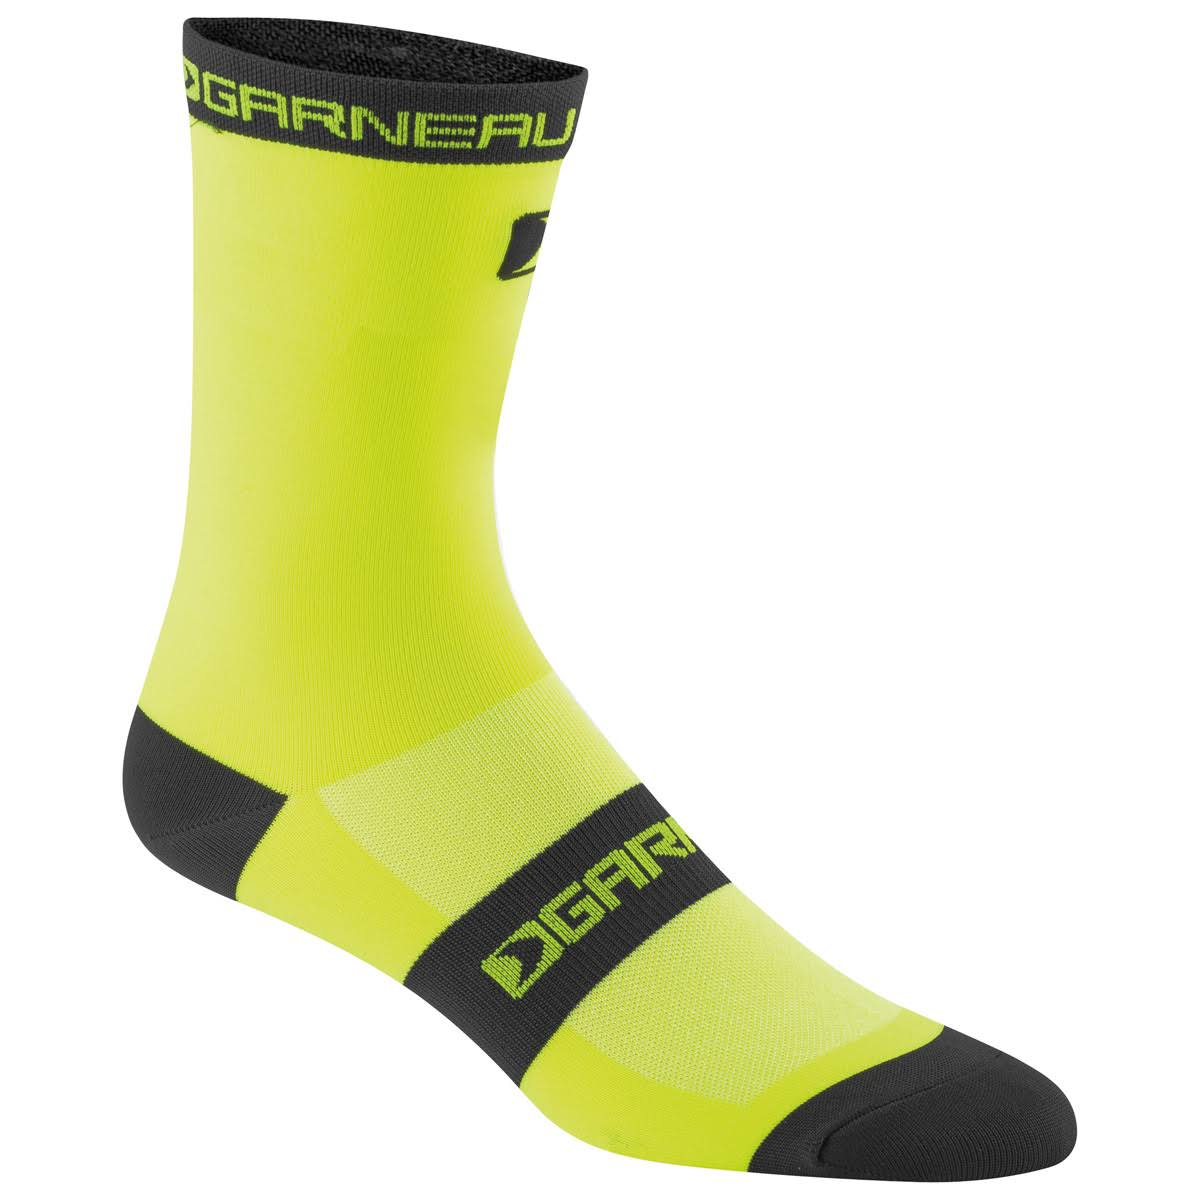 Louis Garneau Adult Tuscan Long Cycling Socks - Yellow Black, Small and Medium